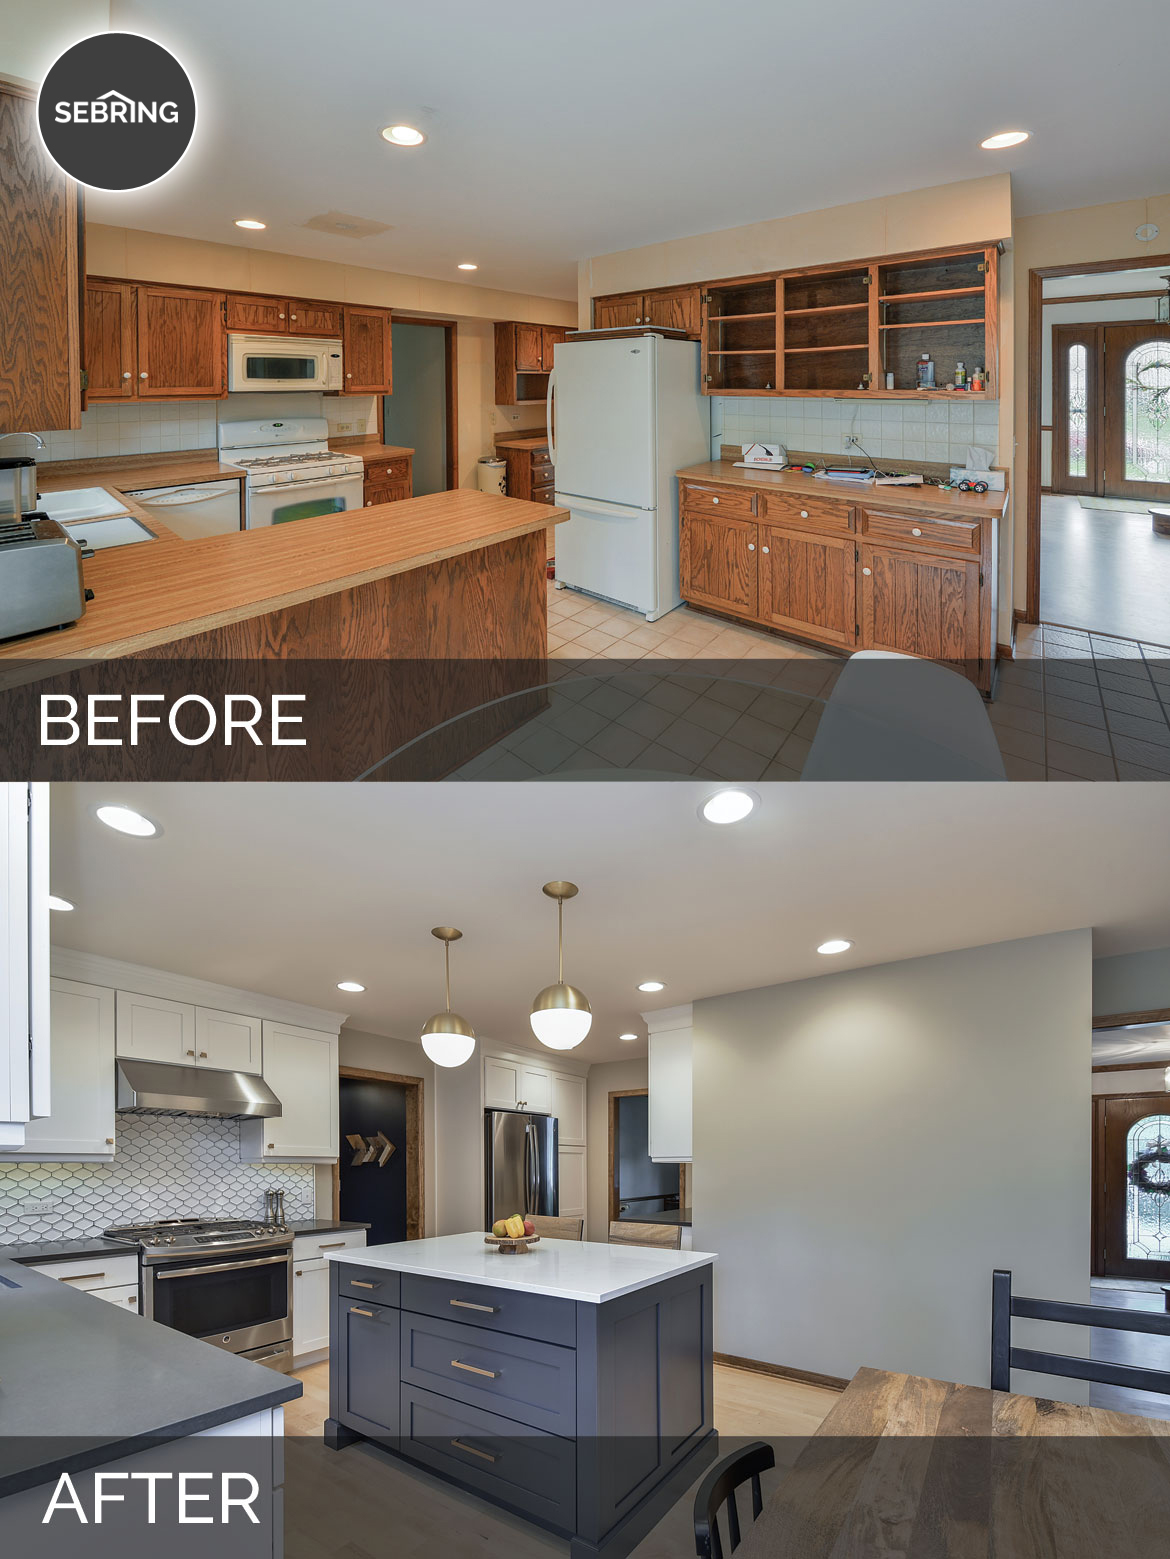 Justin carina s kitchen before after pictures home for I kitchens and renovations